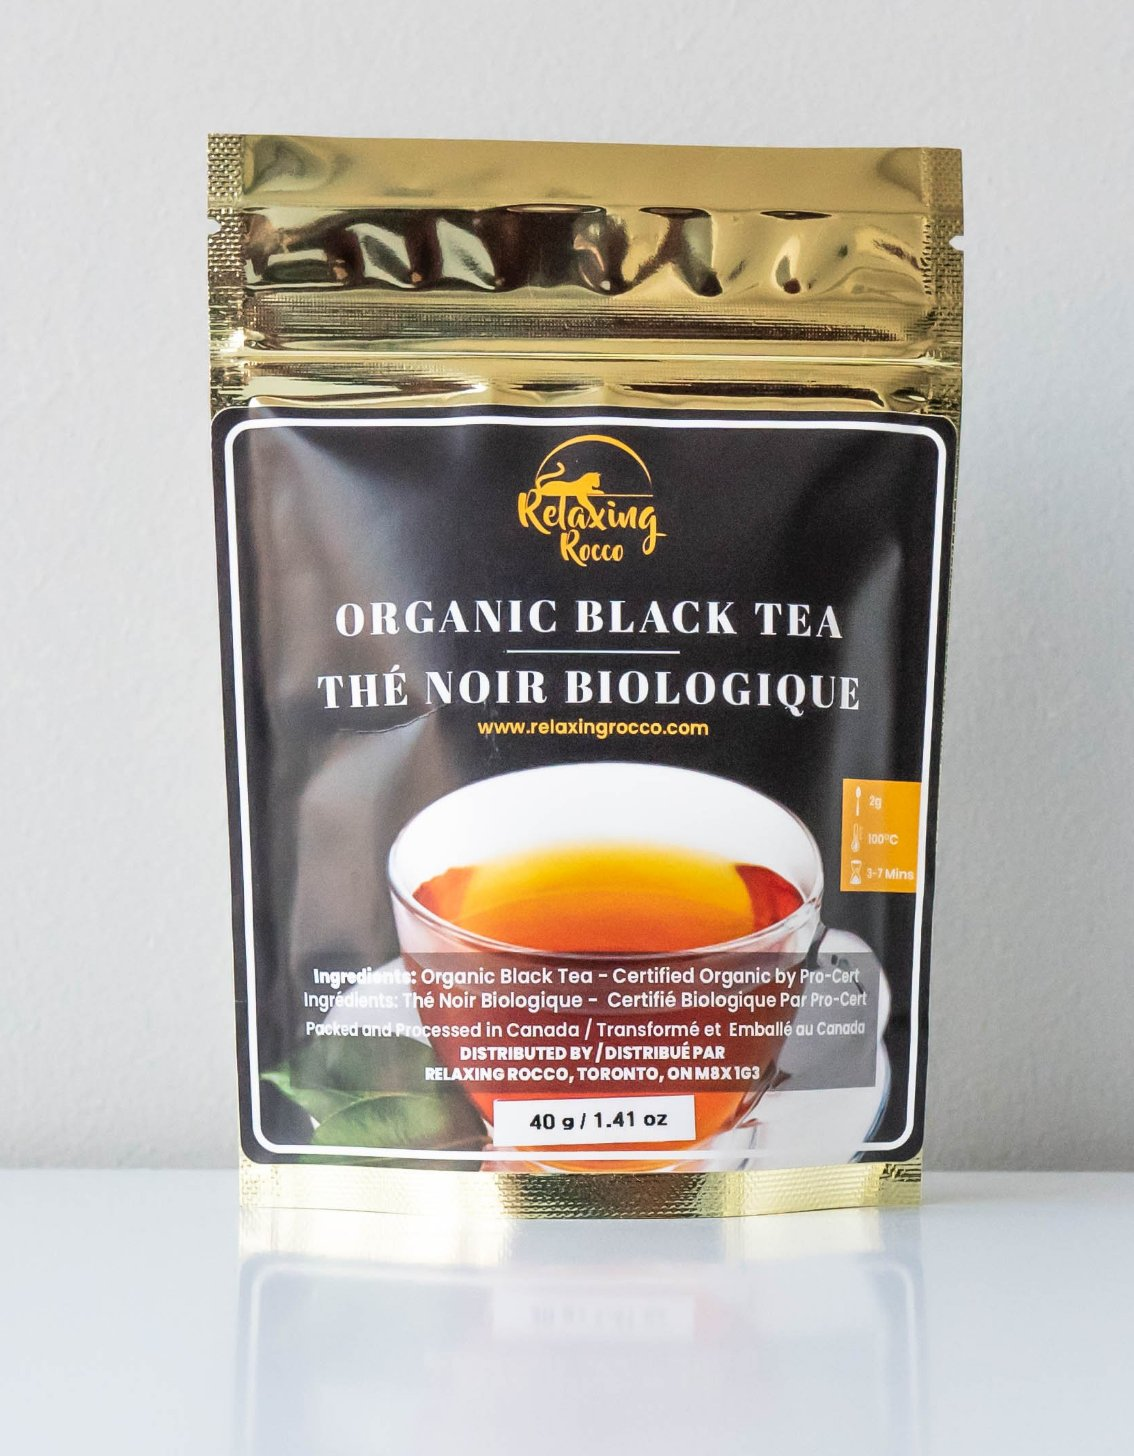 Package of Relaxing Rocco Black Loose Leaf Tea